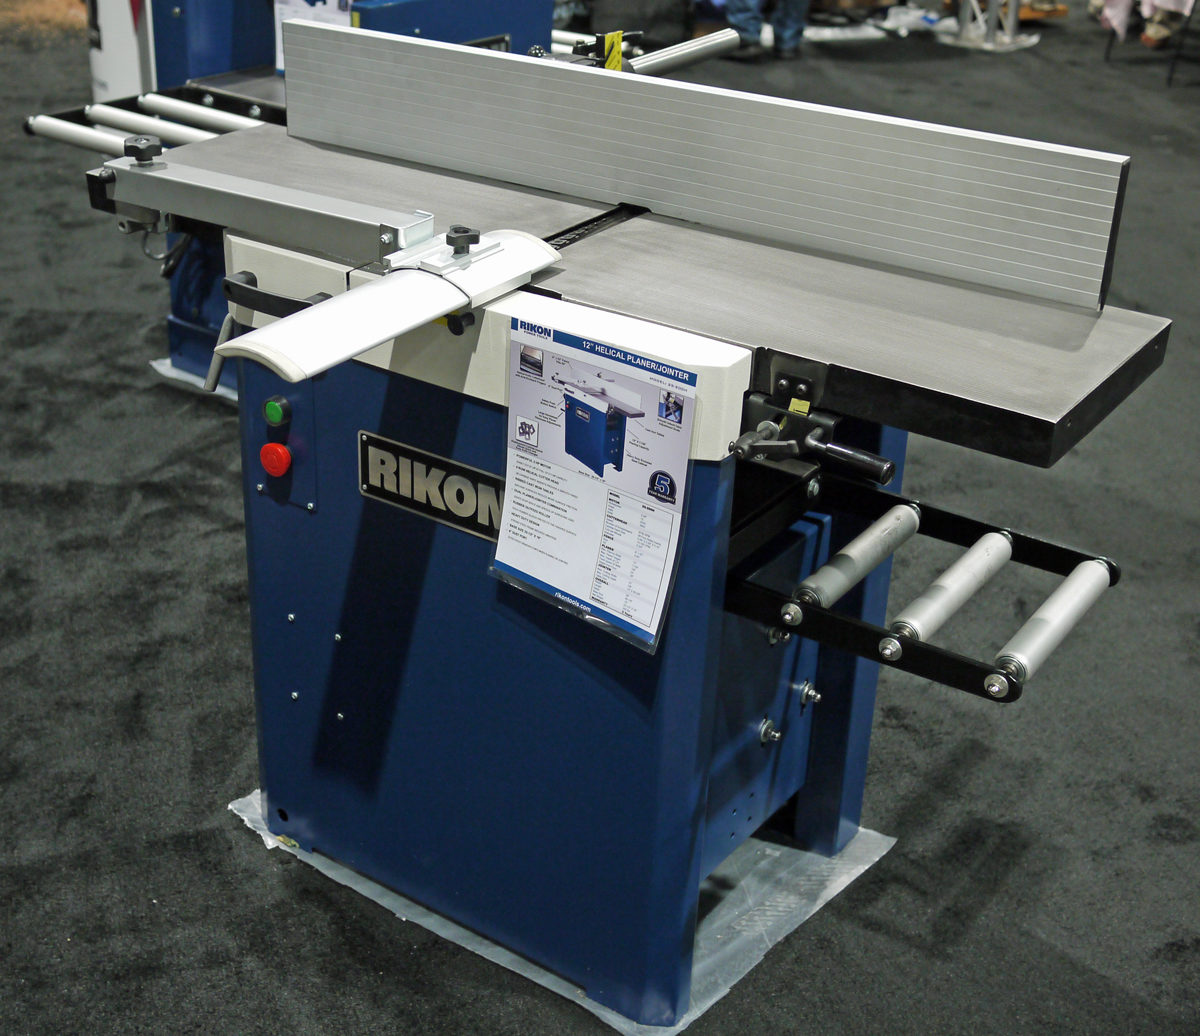 AWFS: Rikon rolls out two market-leading machines